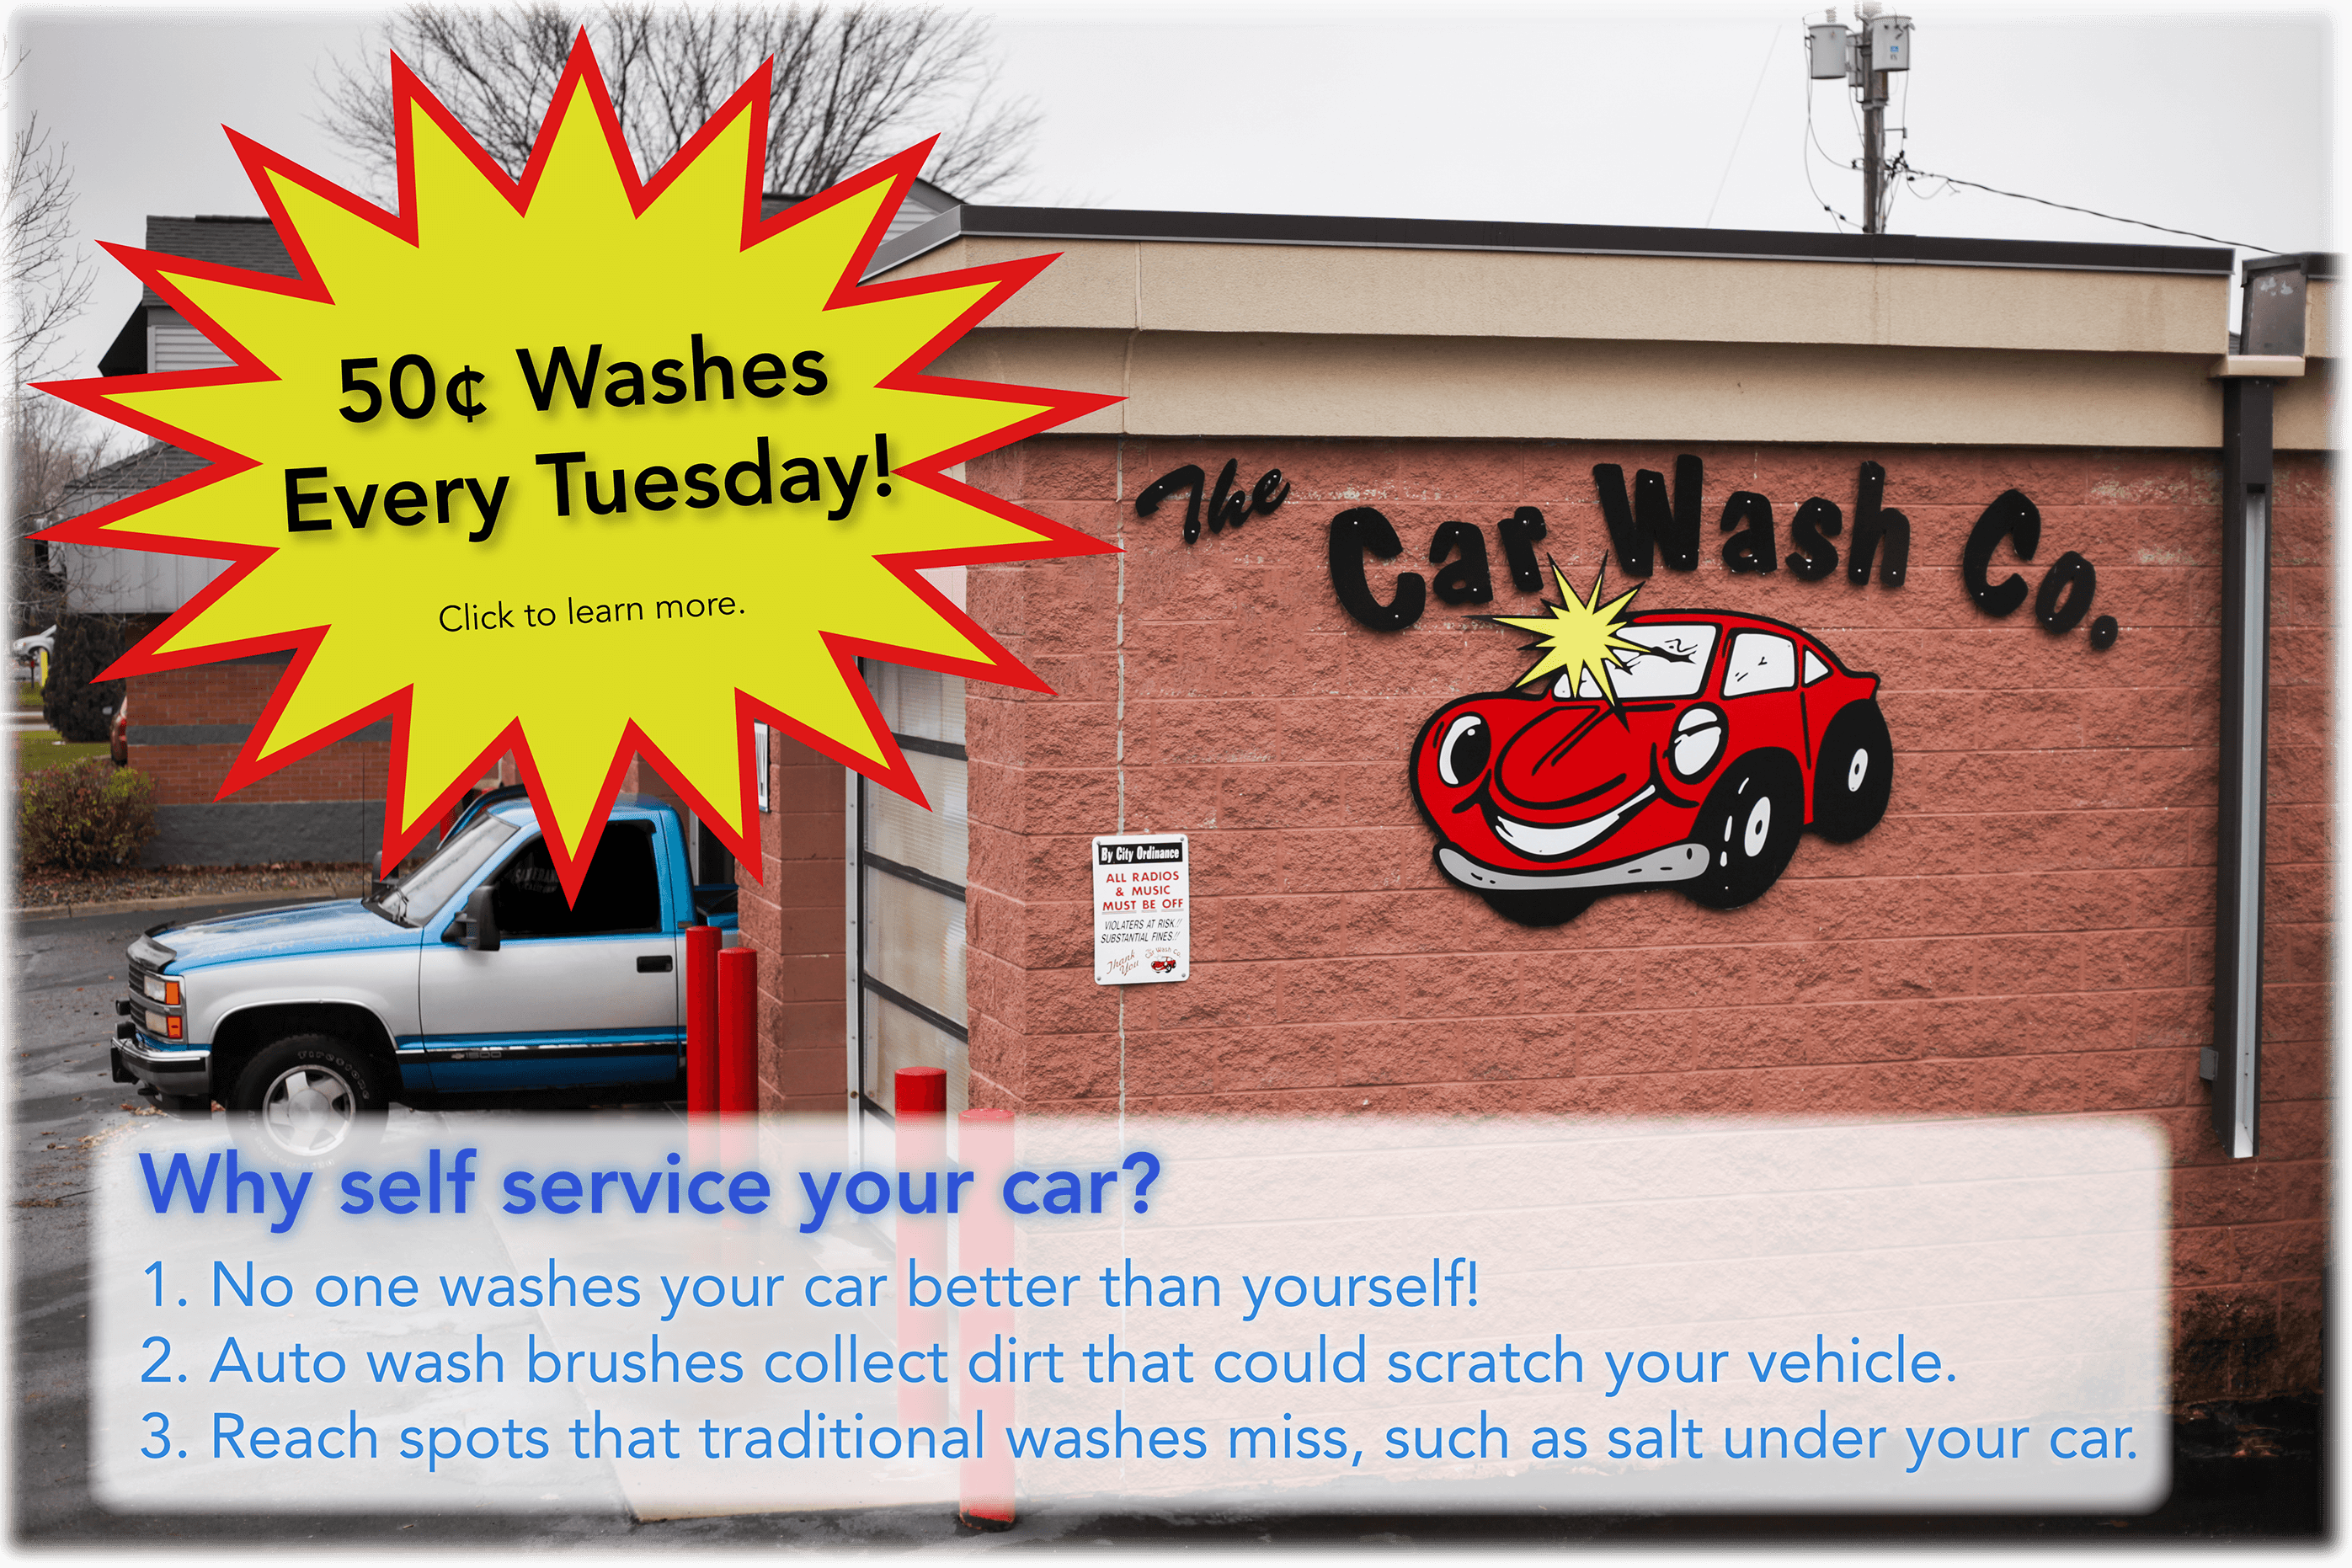 The car wash co self service car washes serving the minnesota metro home solutioingenieria Gallery